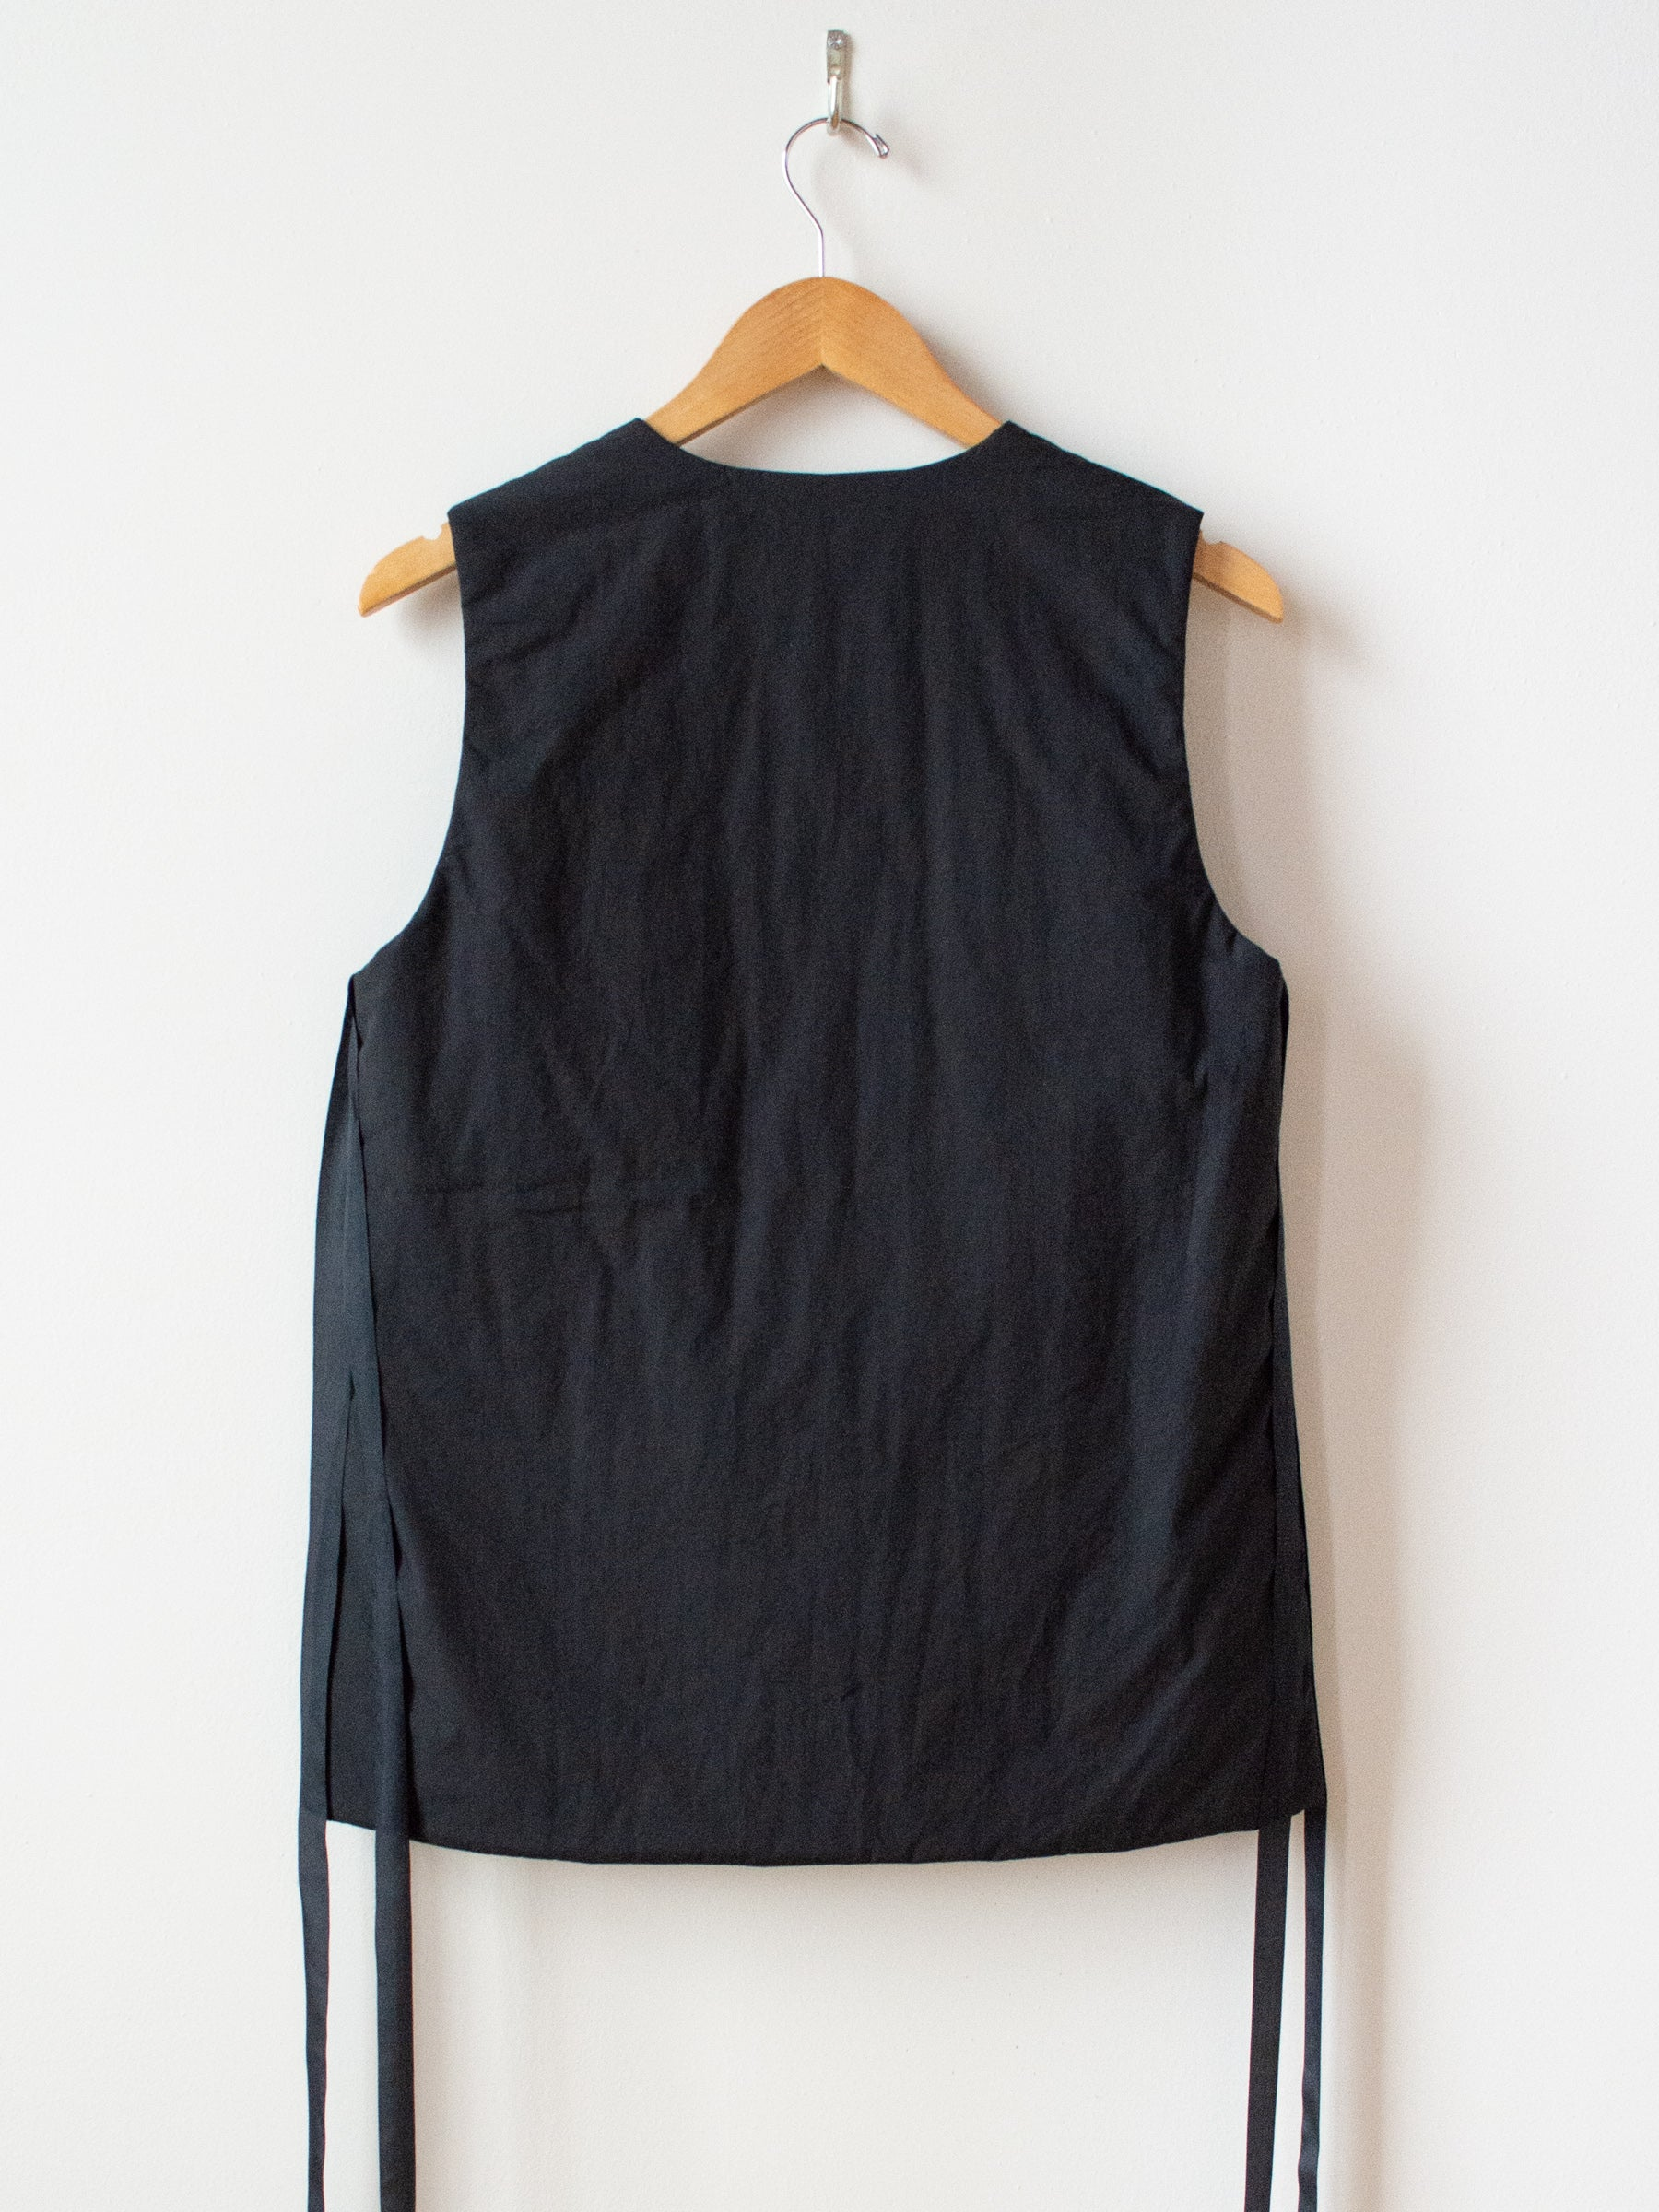 Typewriter Cotton Padded Vest - Black